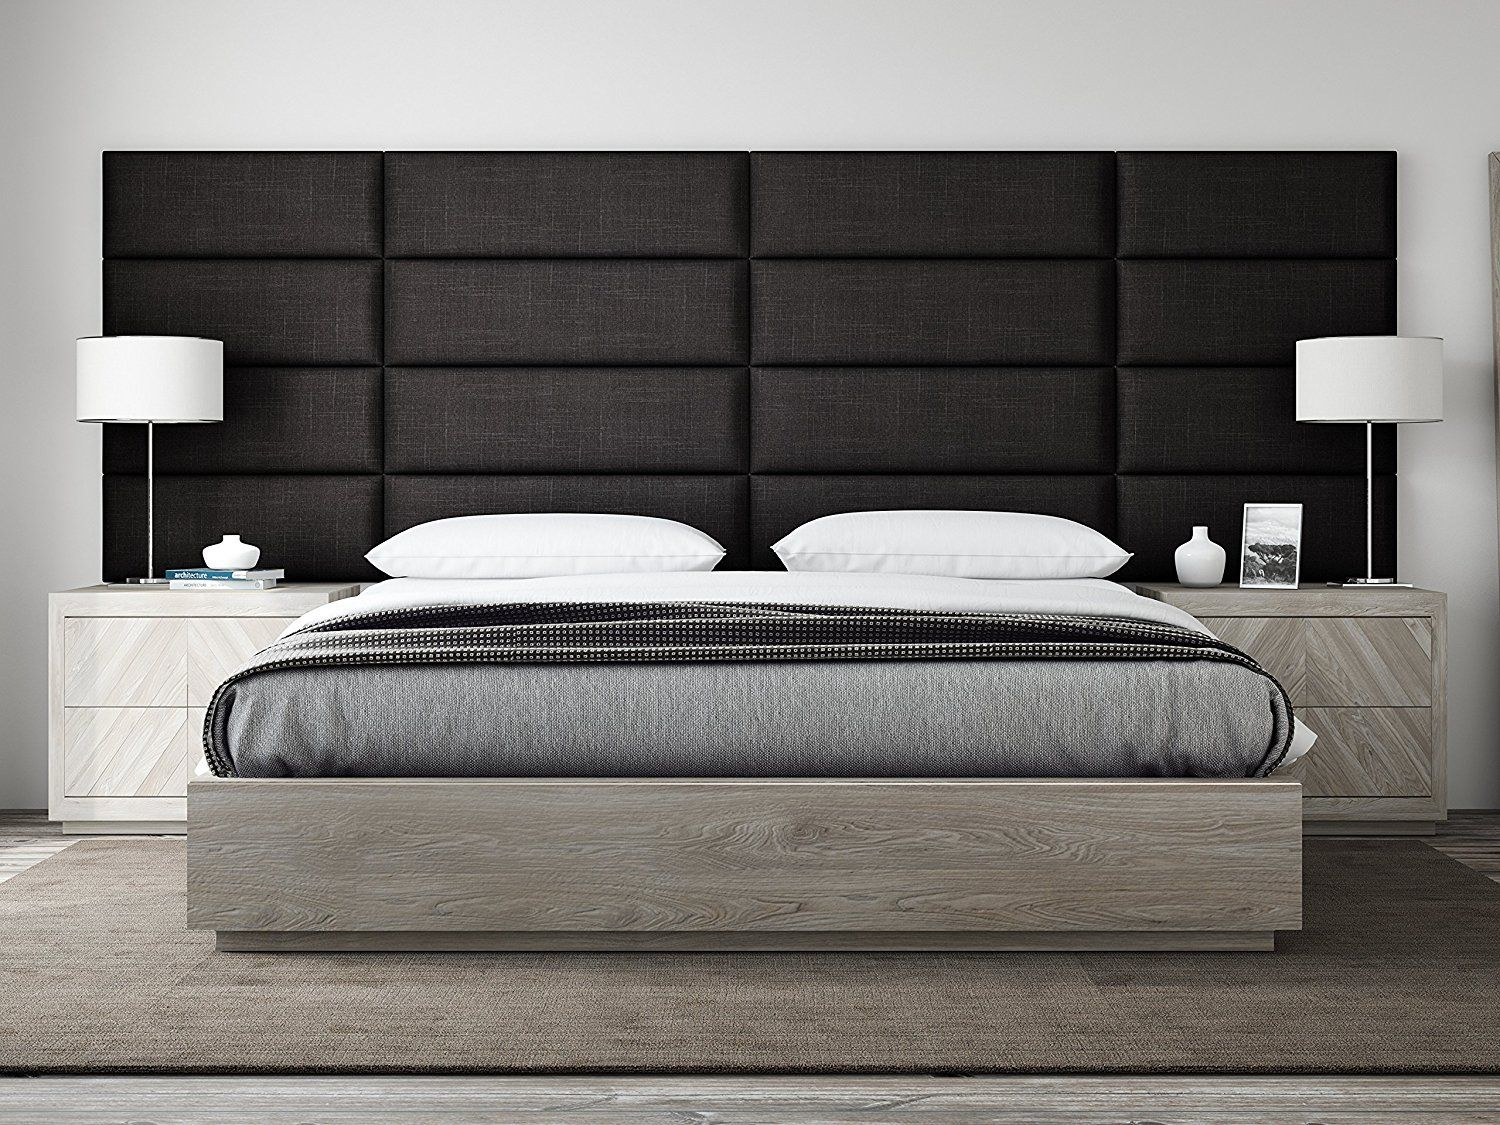 Add Character To Your Bedroom With A Custom Made Headboard Or Padded Wall Panels Like This One From Upholstered Walls Upholstered Headboard King Bedroom Sets